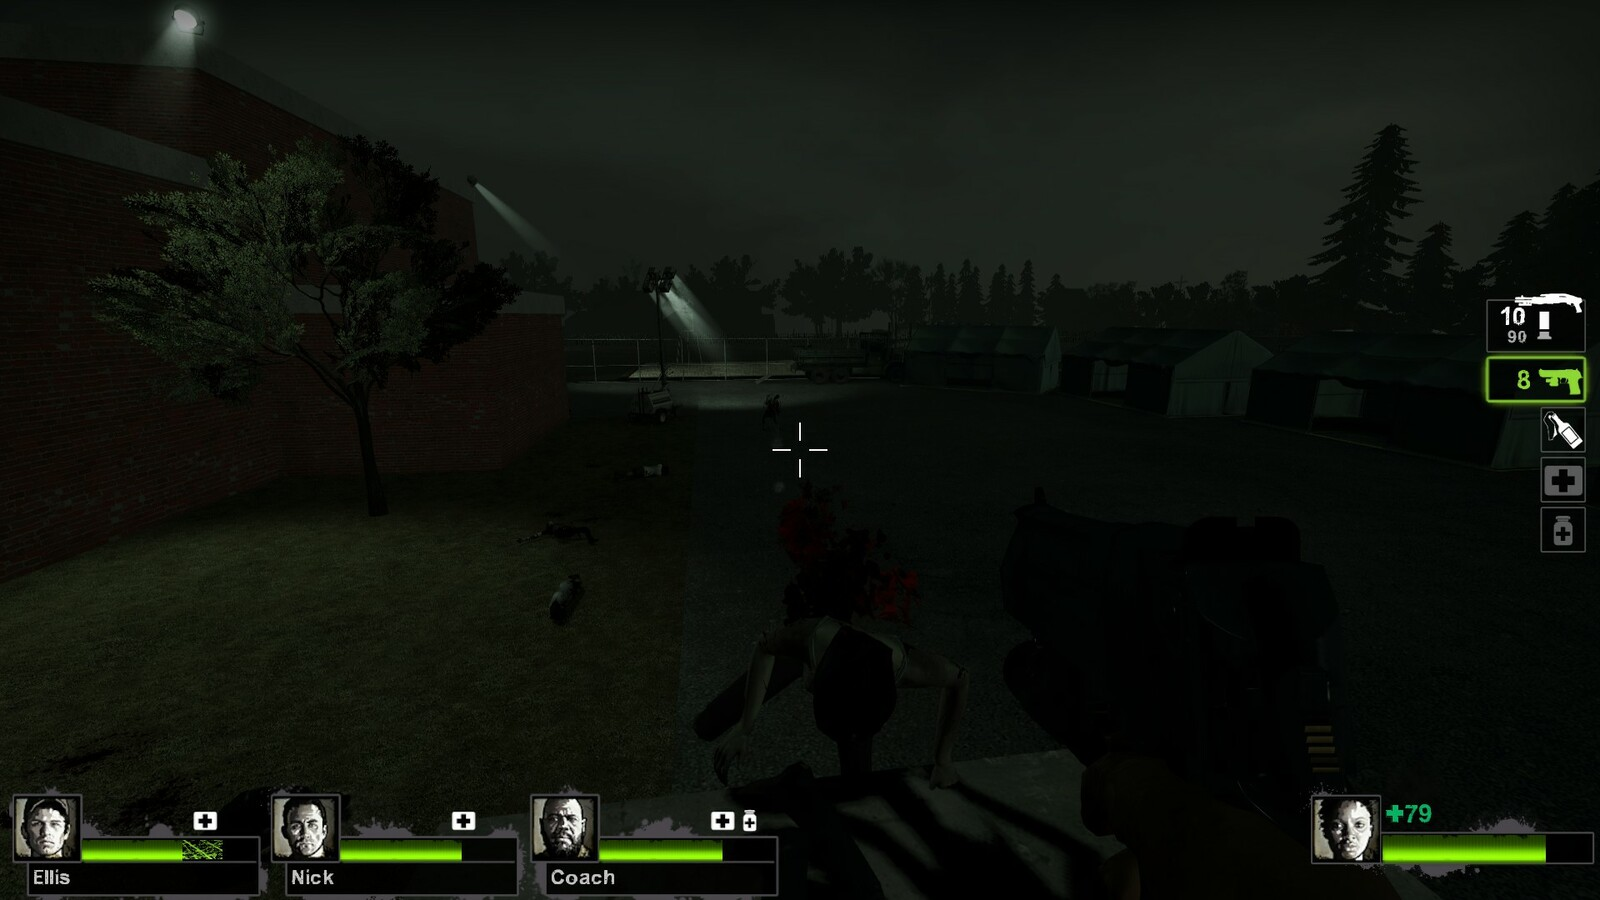 More lighting use to guide the player.